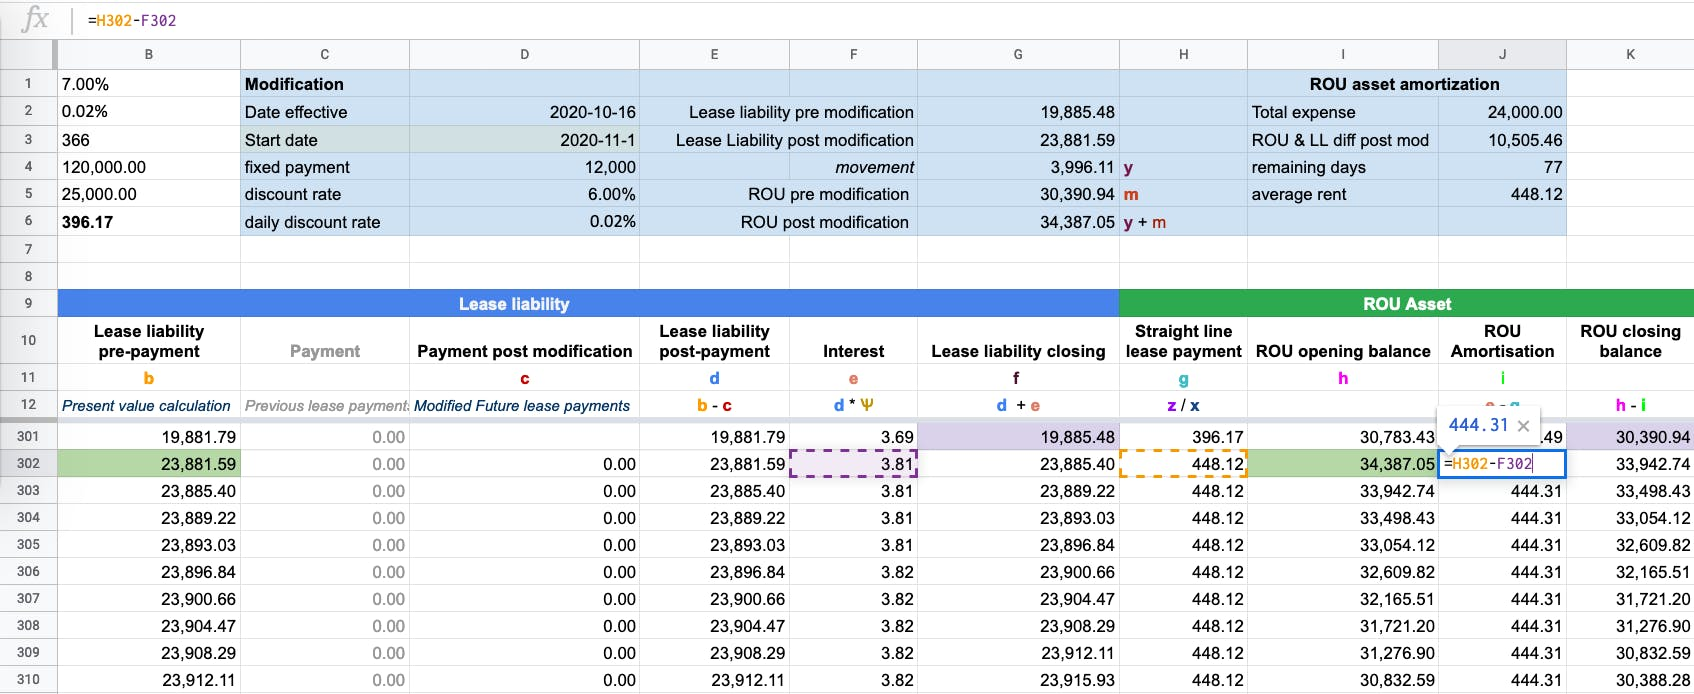 The amortization expense calculation